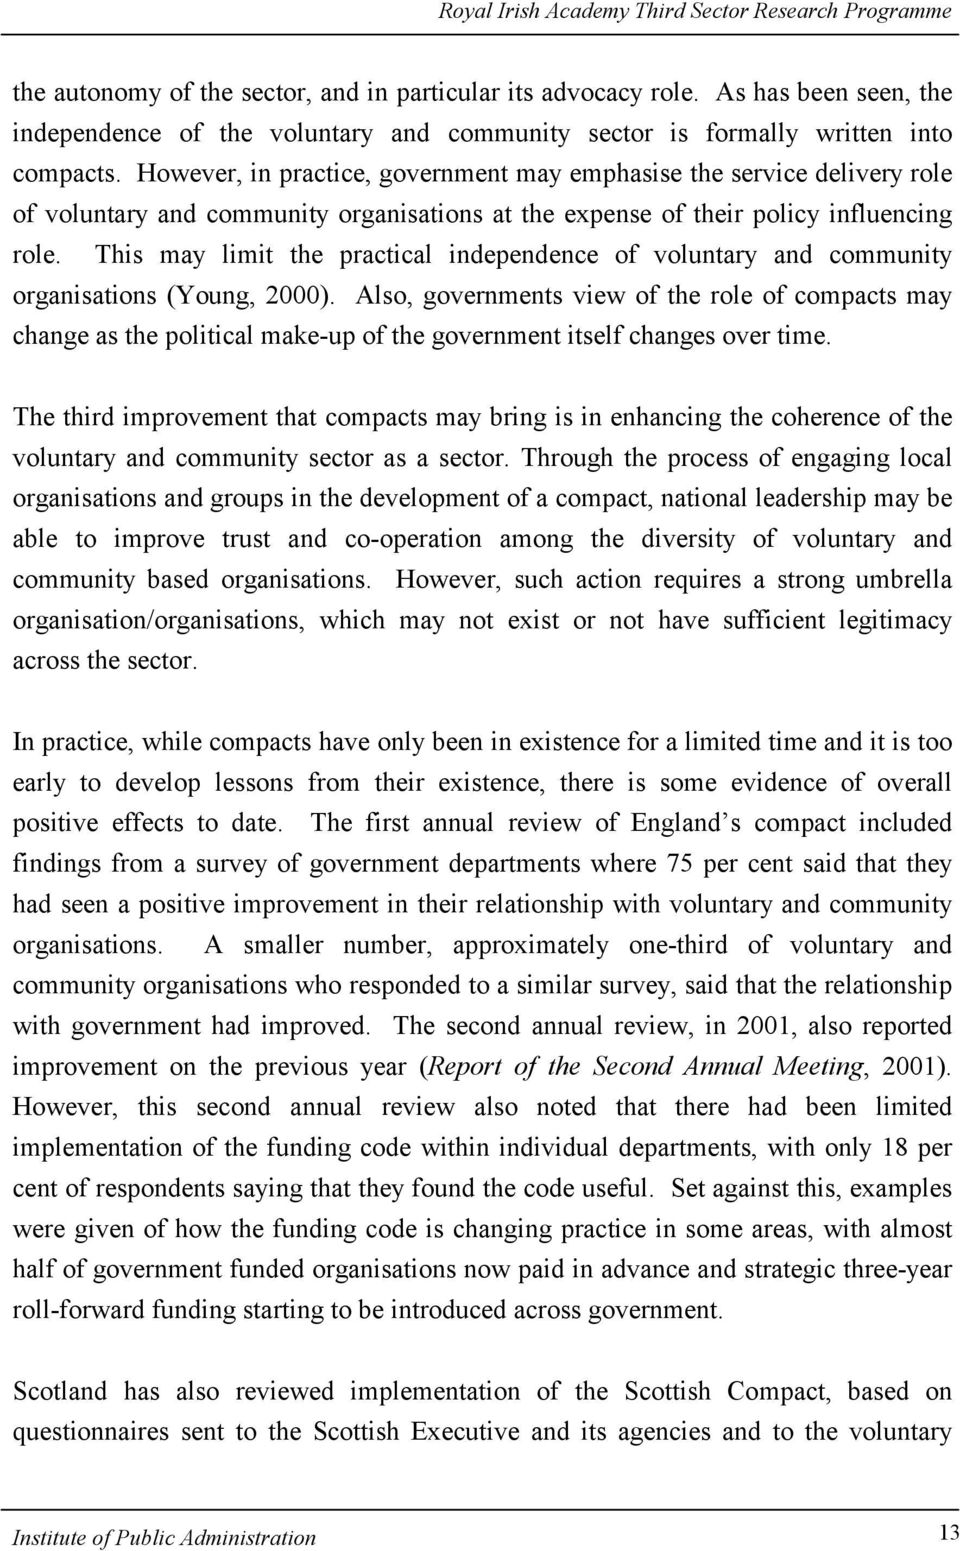 This may limit the practical independence of voluntary and community organisations (Young, 2000).